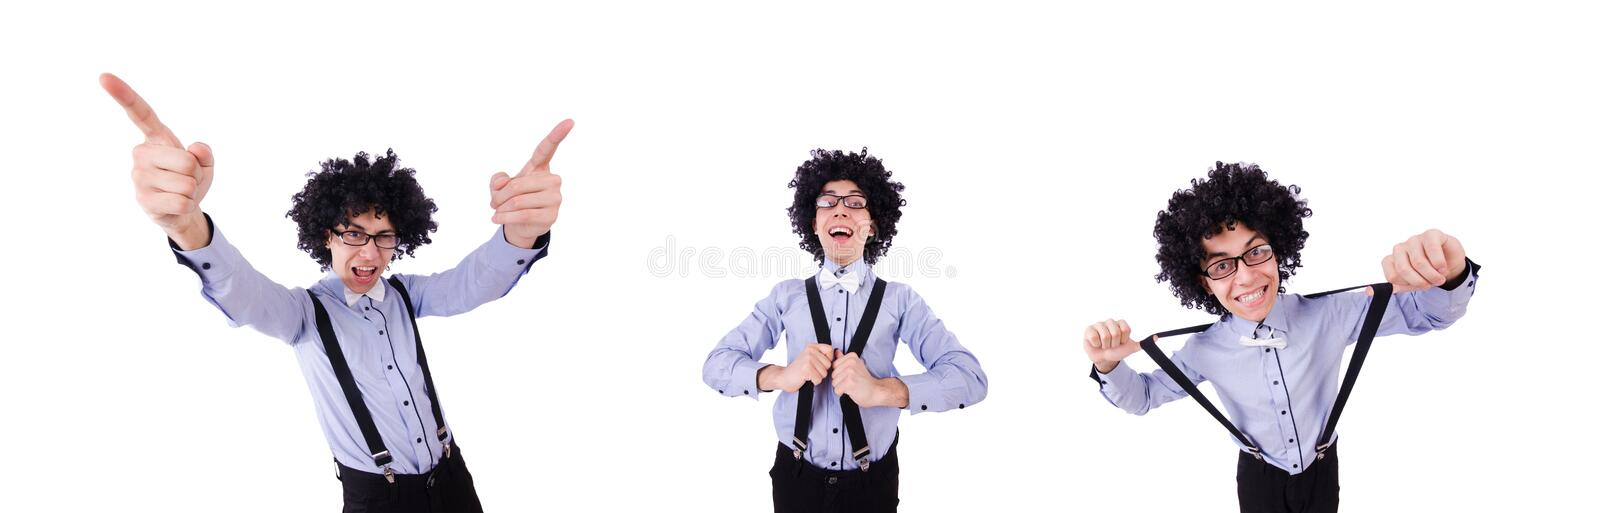 Funny guy isolated on the white background royalty free stock image